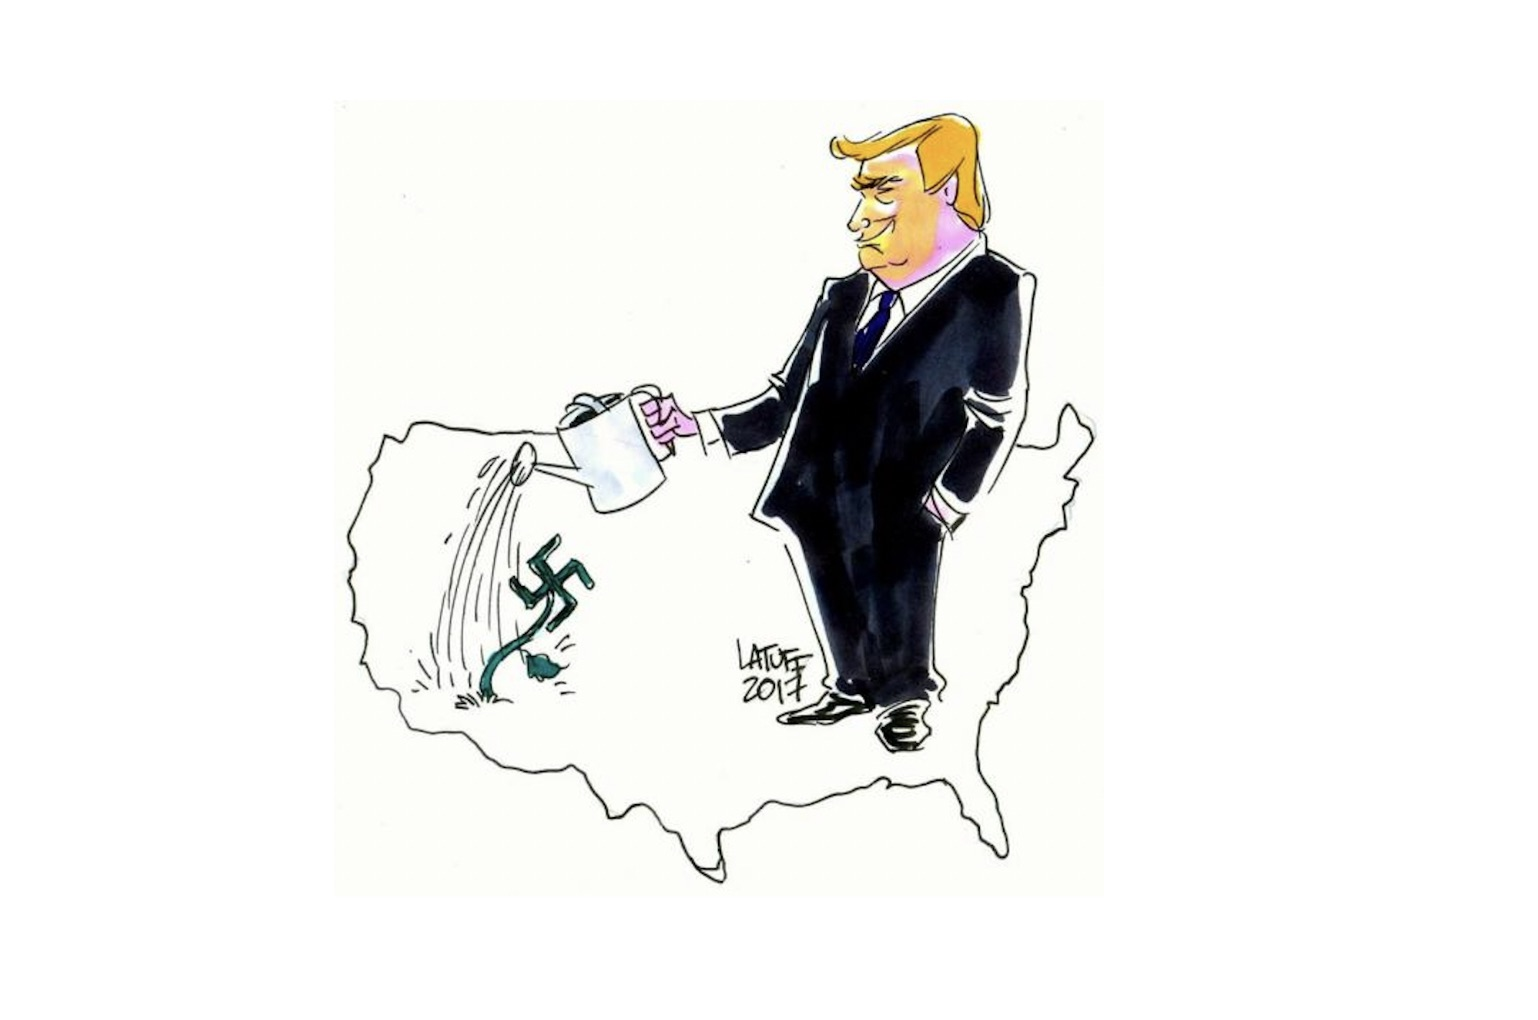 http://poreia.net/sites/default/files/field/image/latuff_trump.jpg